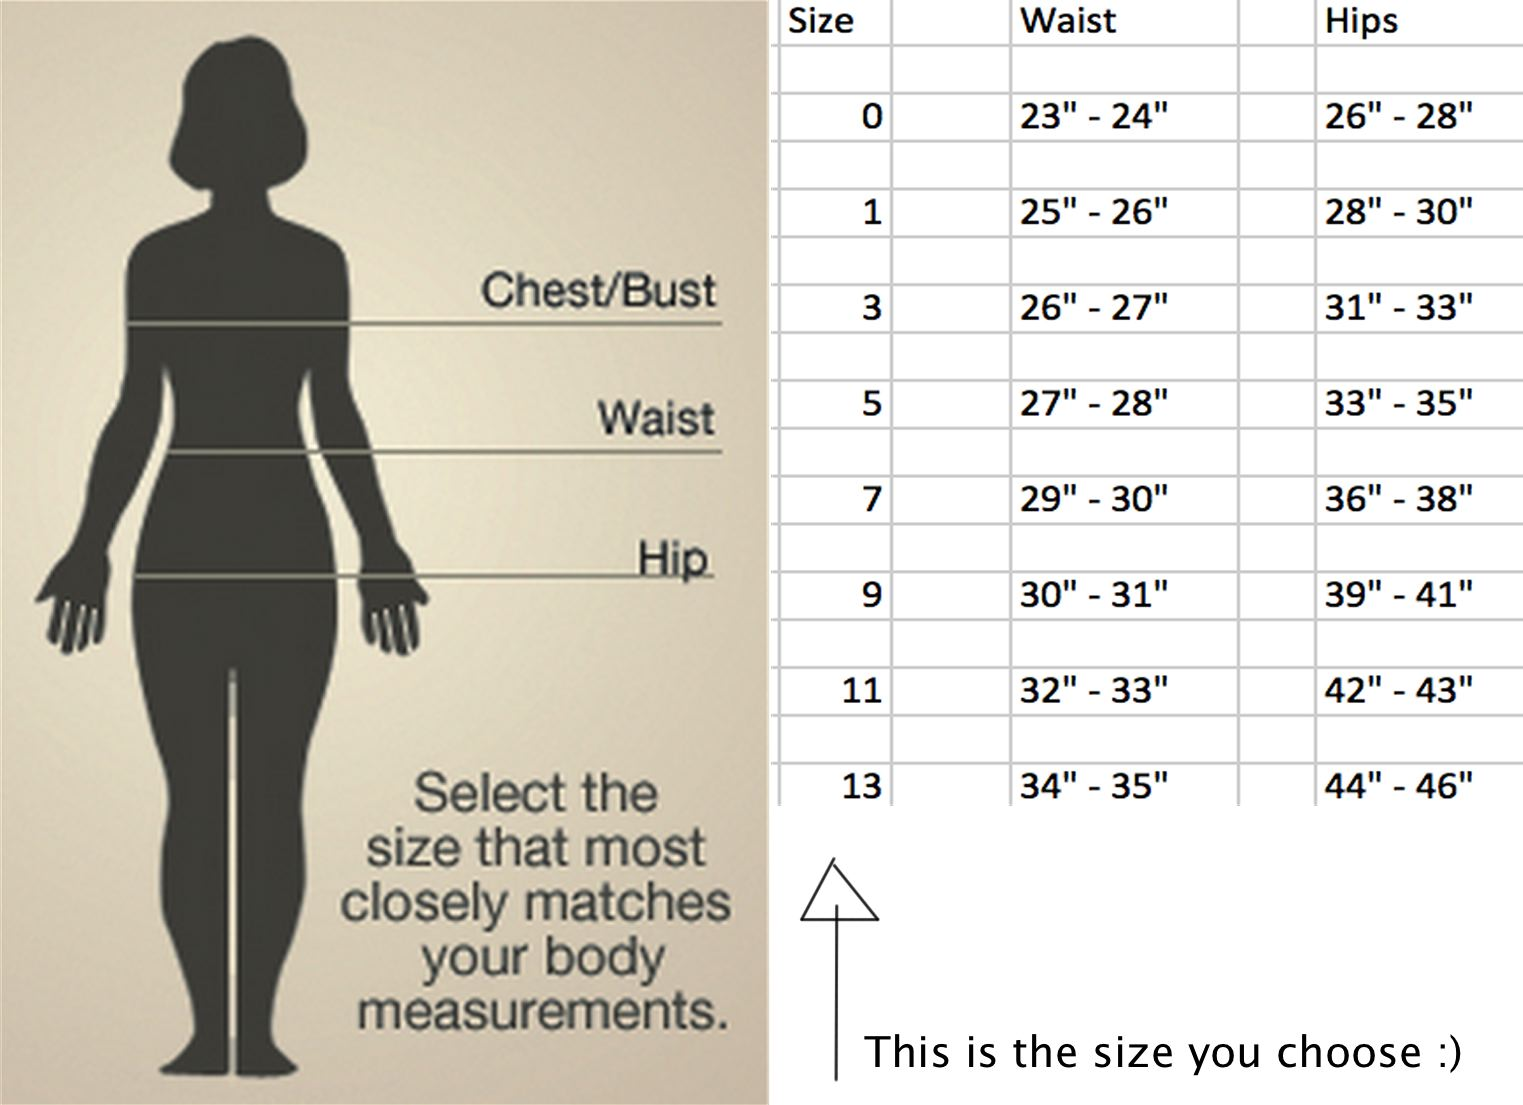 All the answers are great, but DR charts are out dated. 5′8″, a 32 waist seems about right. Idealy for a masculine V shape, and 8 to 10 inch difference between waist and chest is desireable.